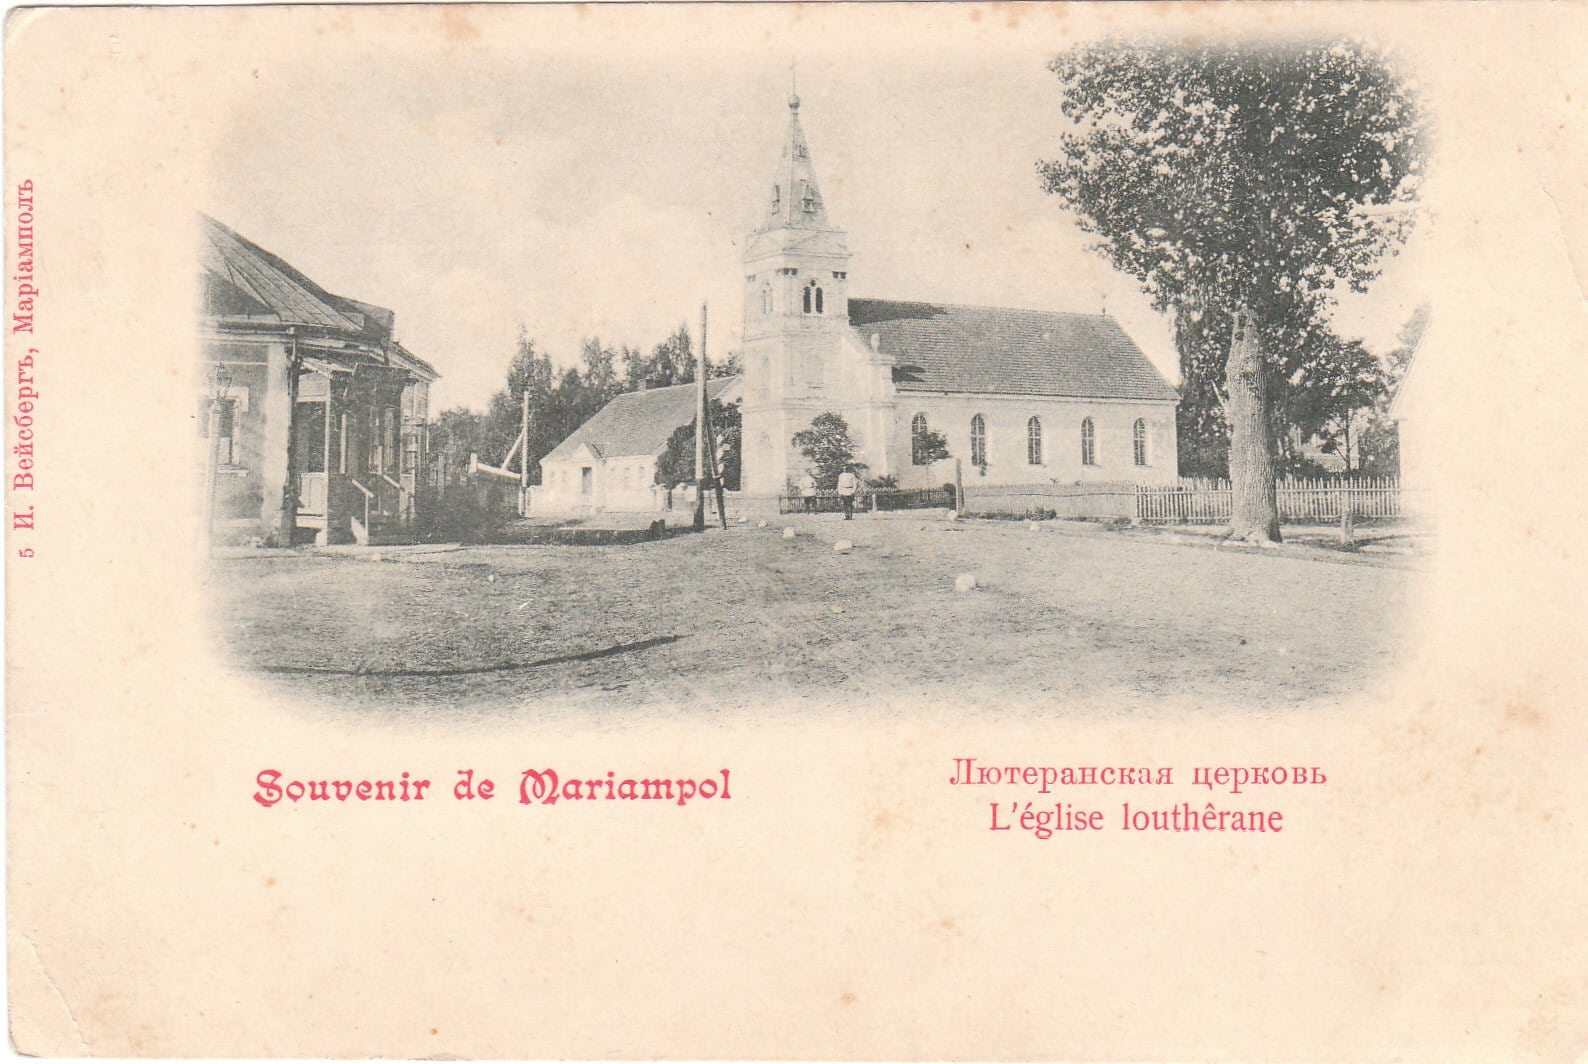 Evangelical Lutheran Church and School (built in the first half of the 19th century)